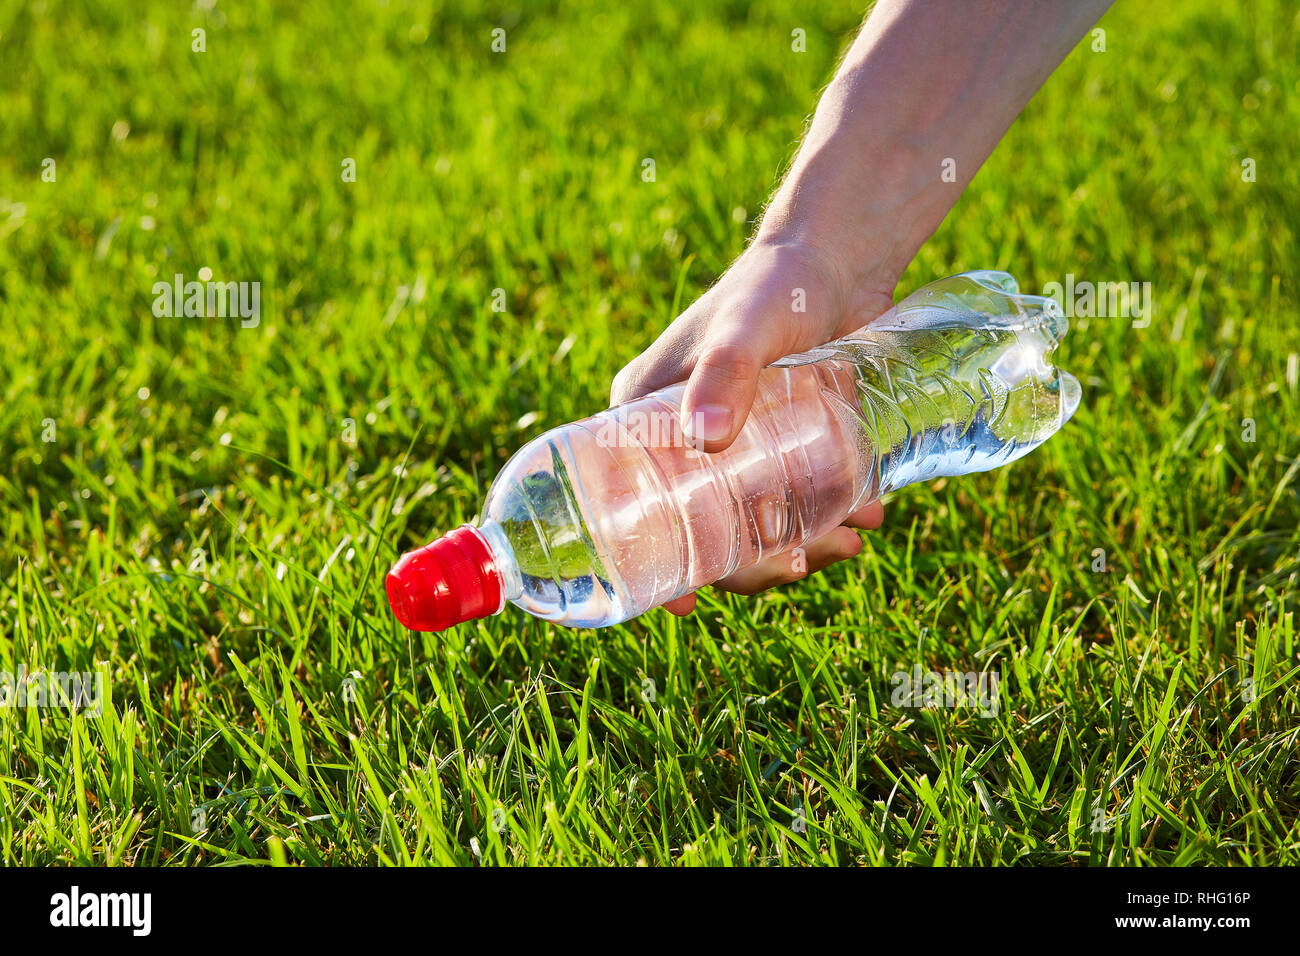 Hand holding a bottle of pure water against green blurred grass background - Stock Image